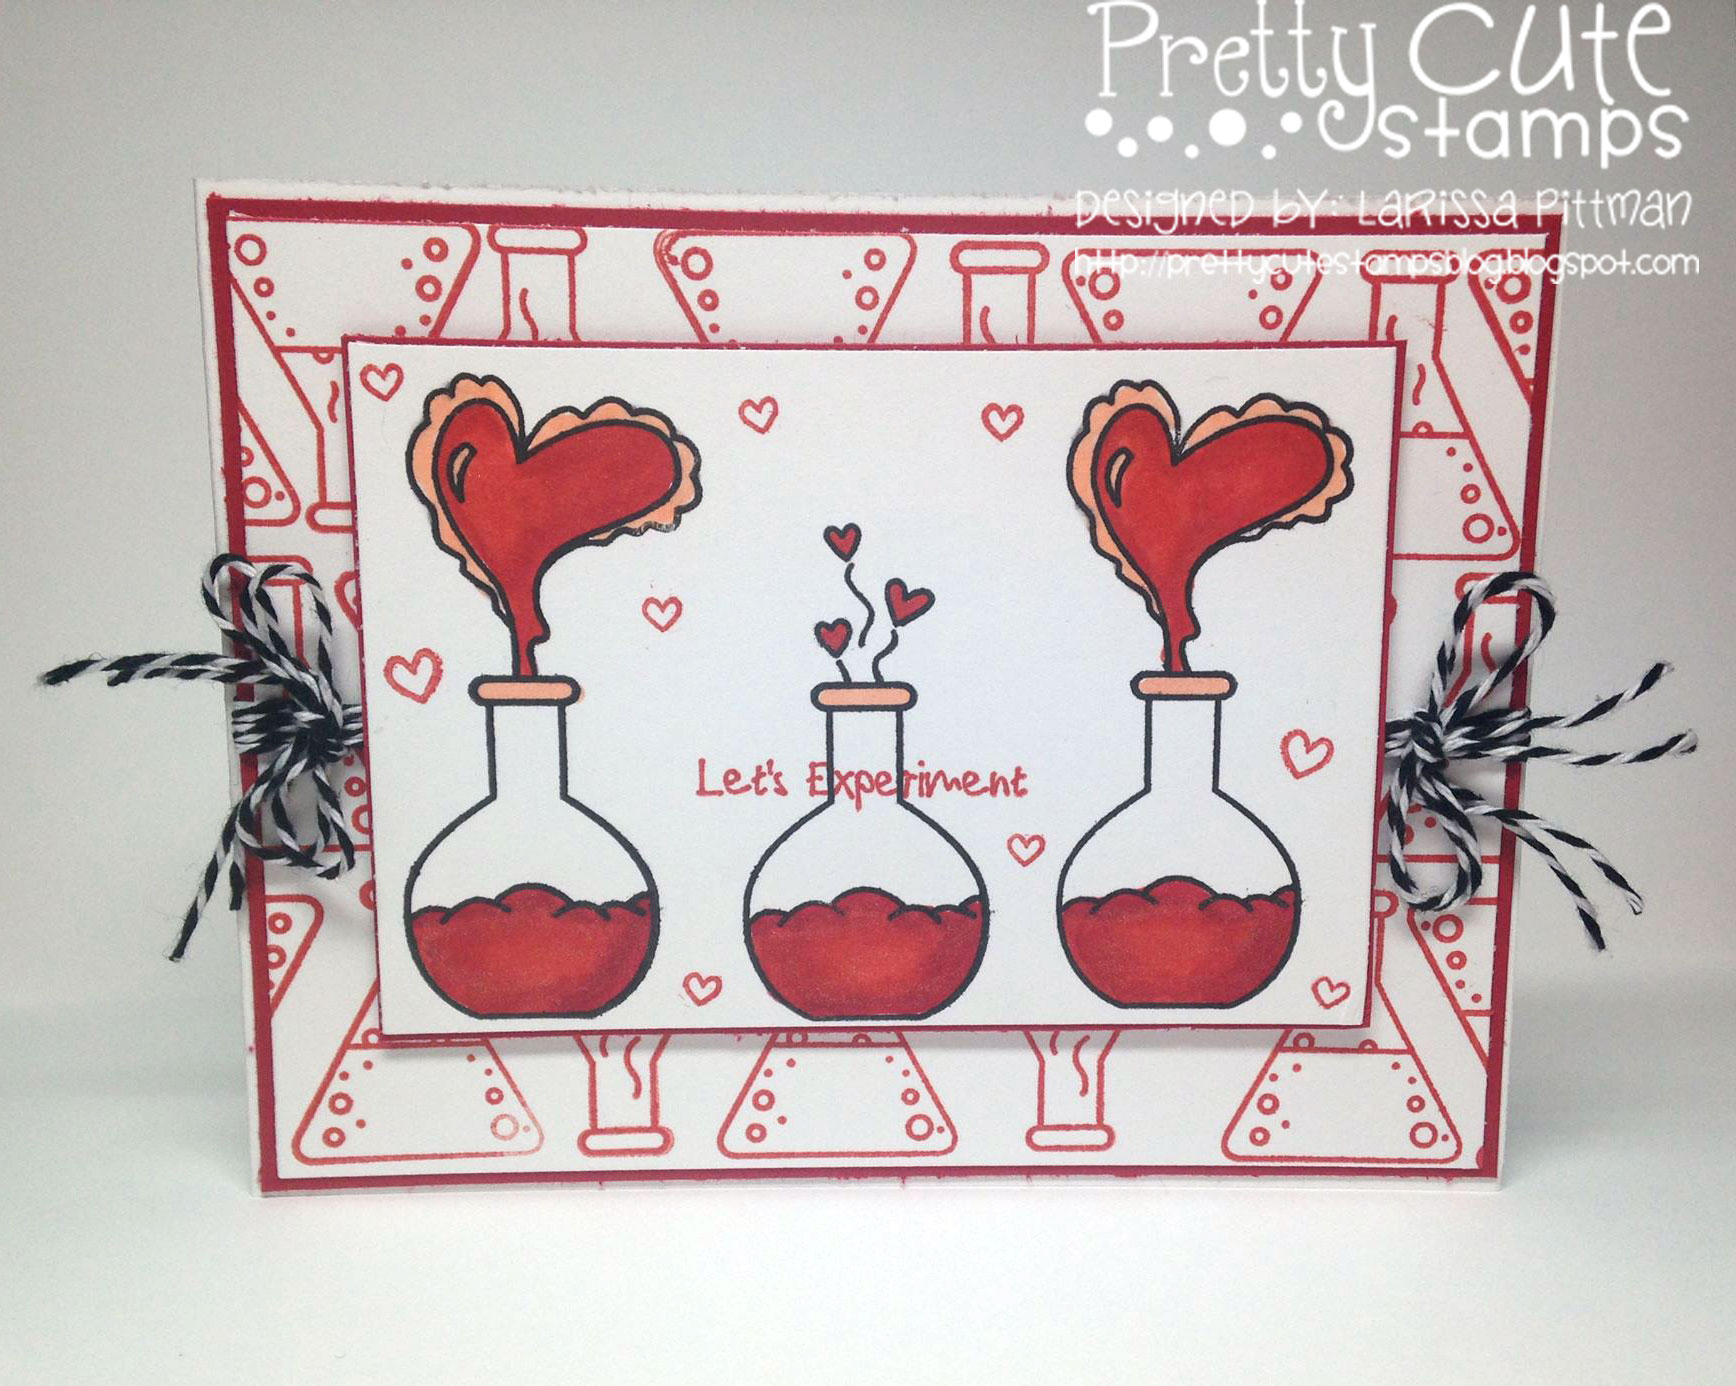 Designed-by-Larissa-Pittman-of-Muffins-and-Lace-for-Pretty-Cute-Stamps-using-stamp-set-Great-Chemistry